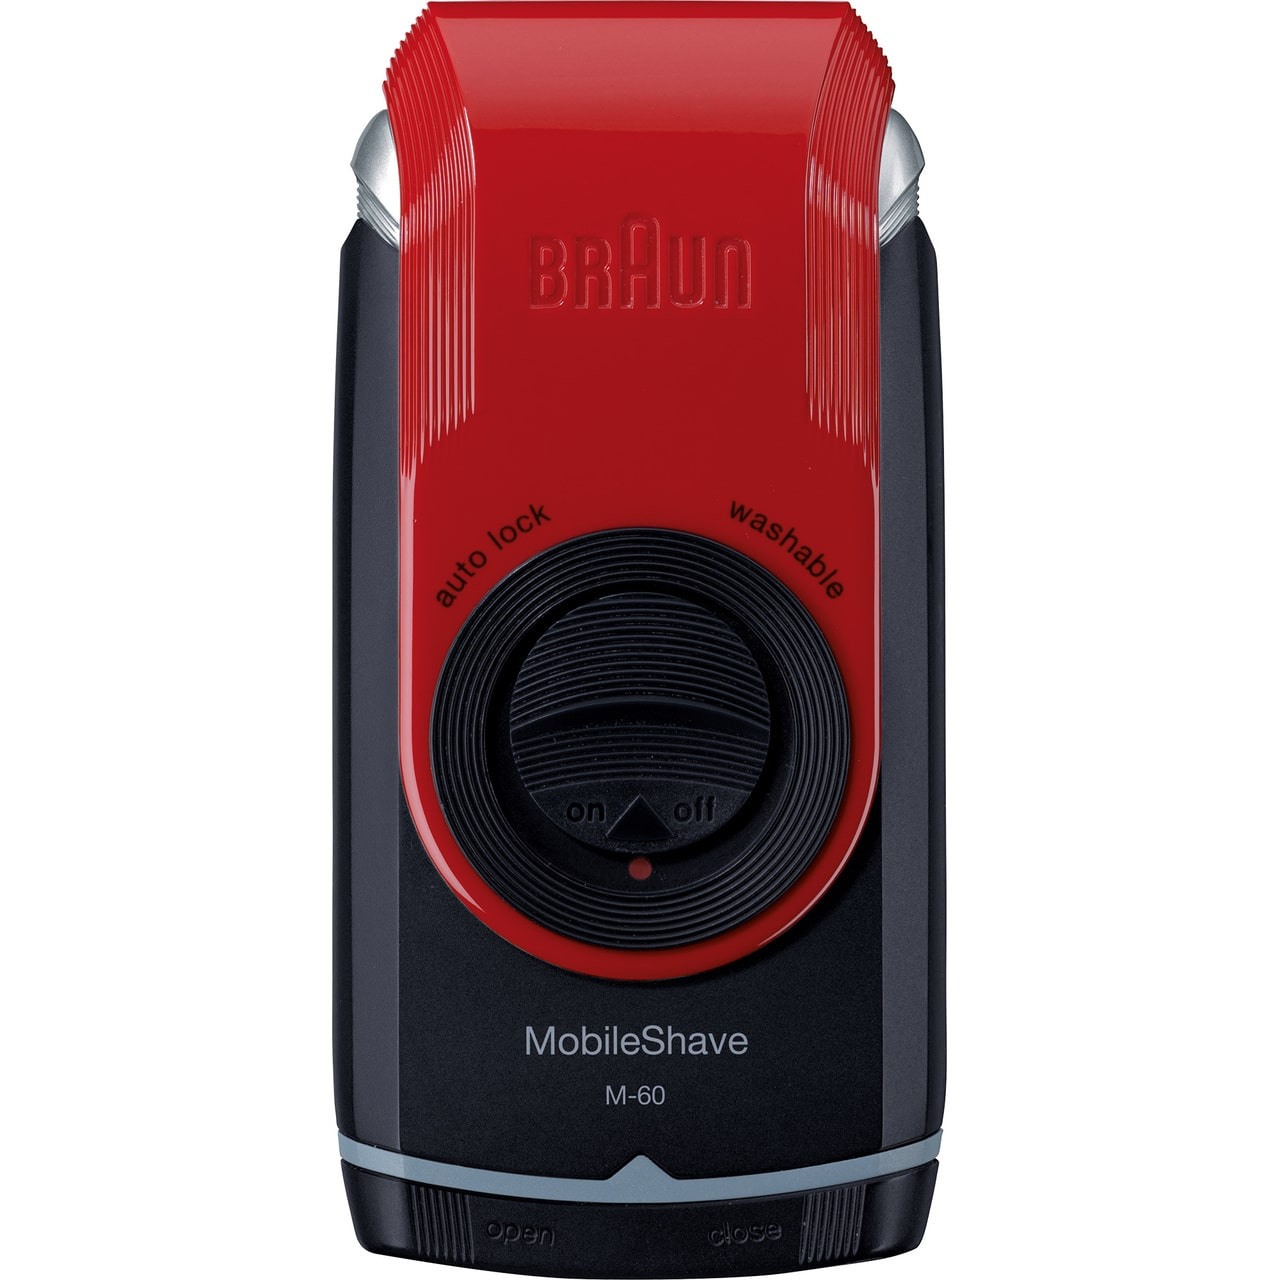 BRAUN MOBILE SHAVER M60 RED - BATTERY OPERATED